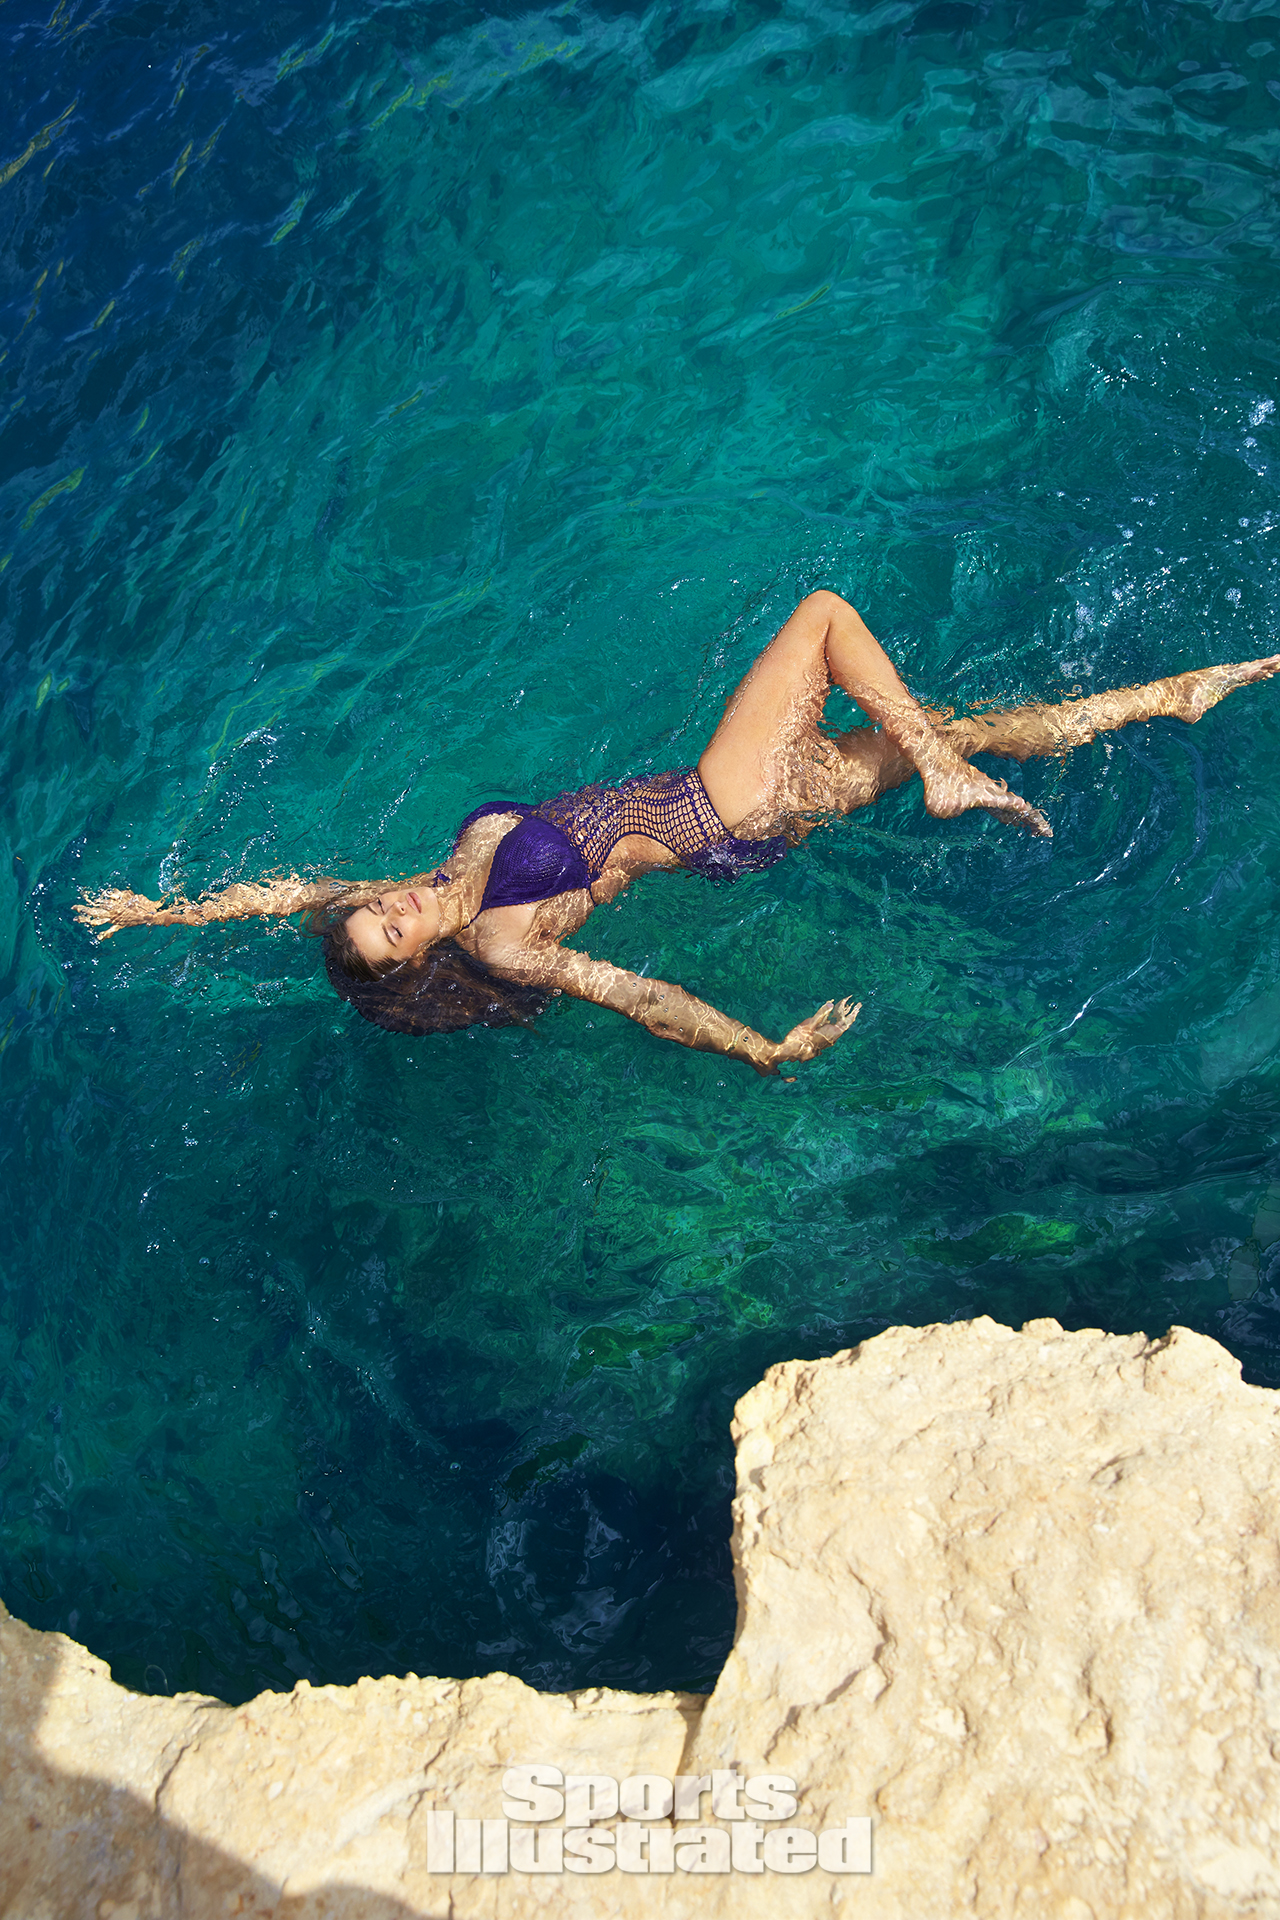 Robyn Lawley was photographed by Ben Watts in Malta. Swimsuit by Beauty & The Beach.